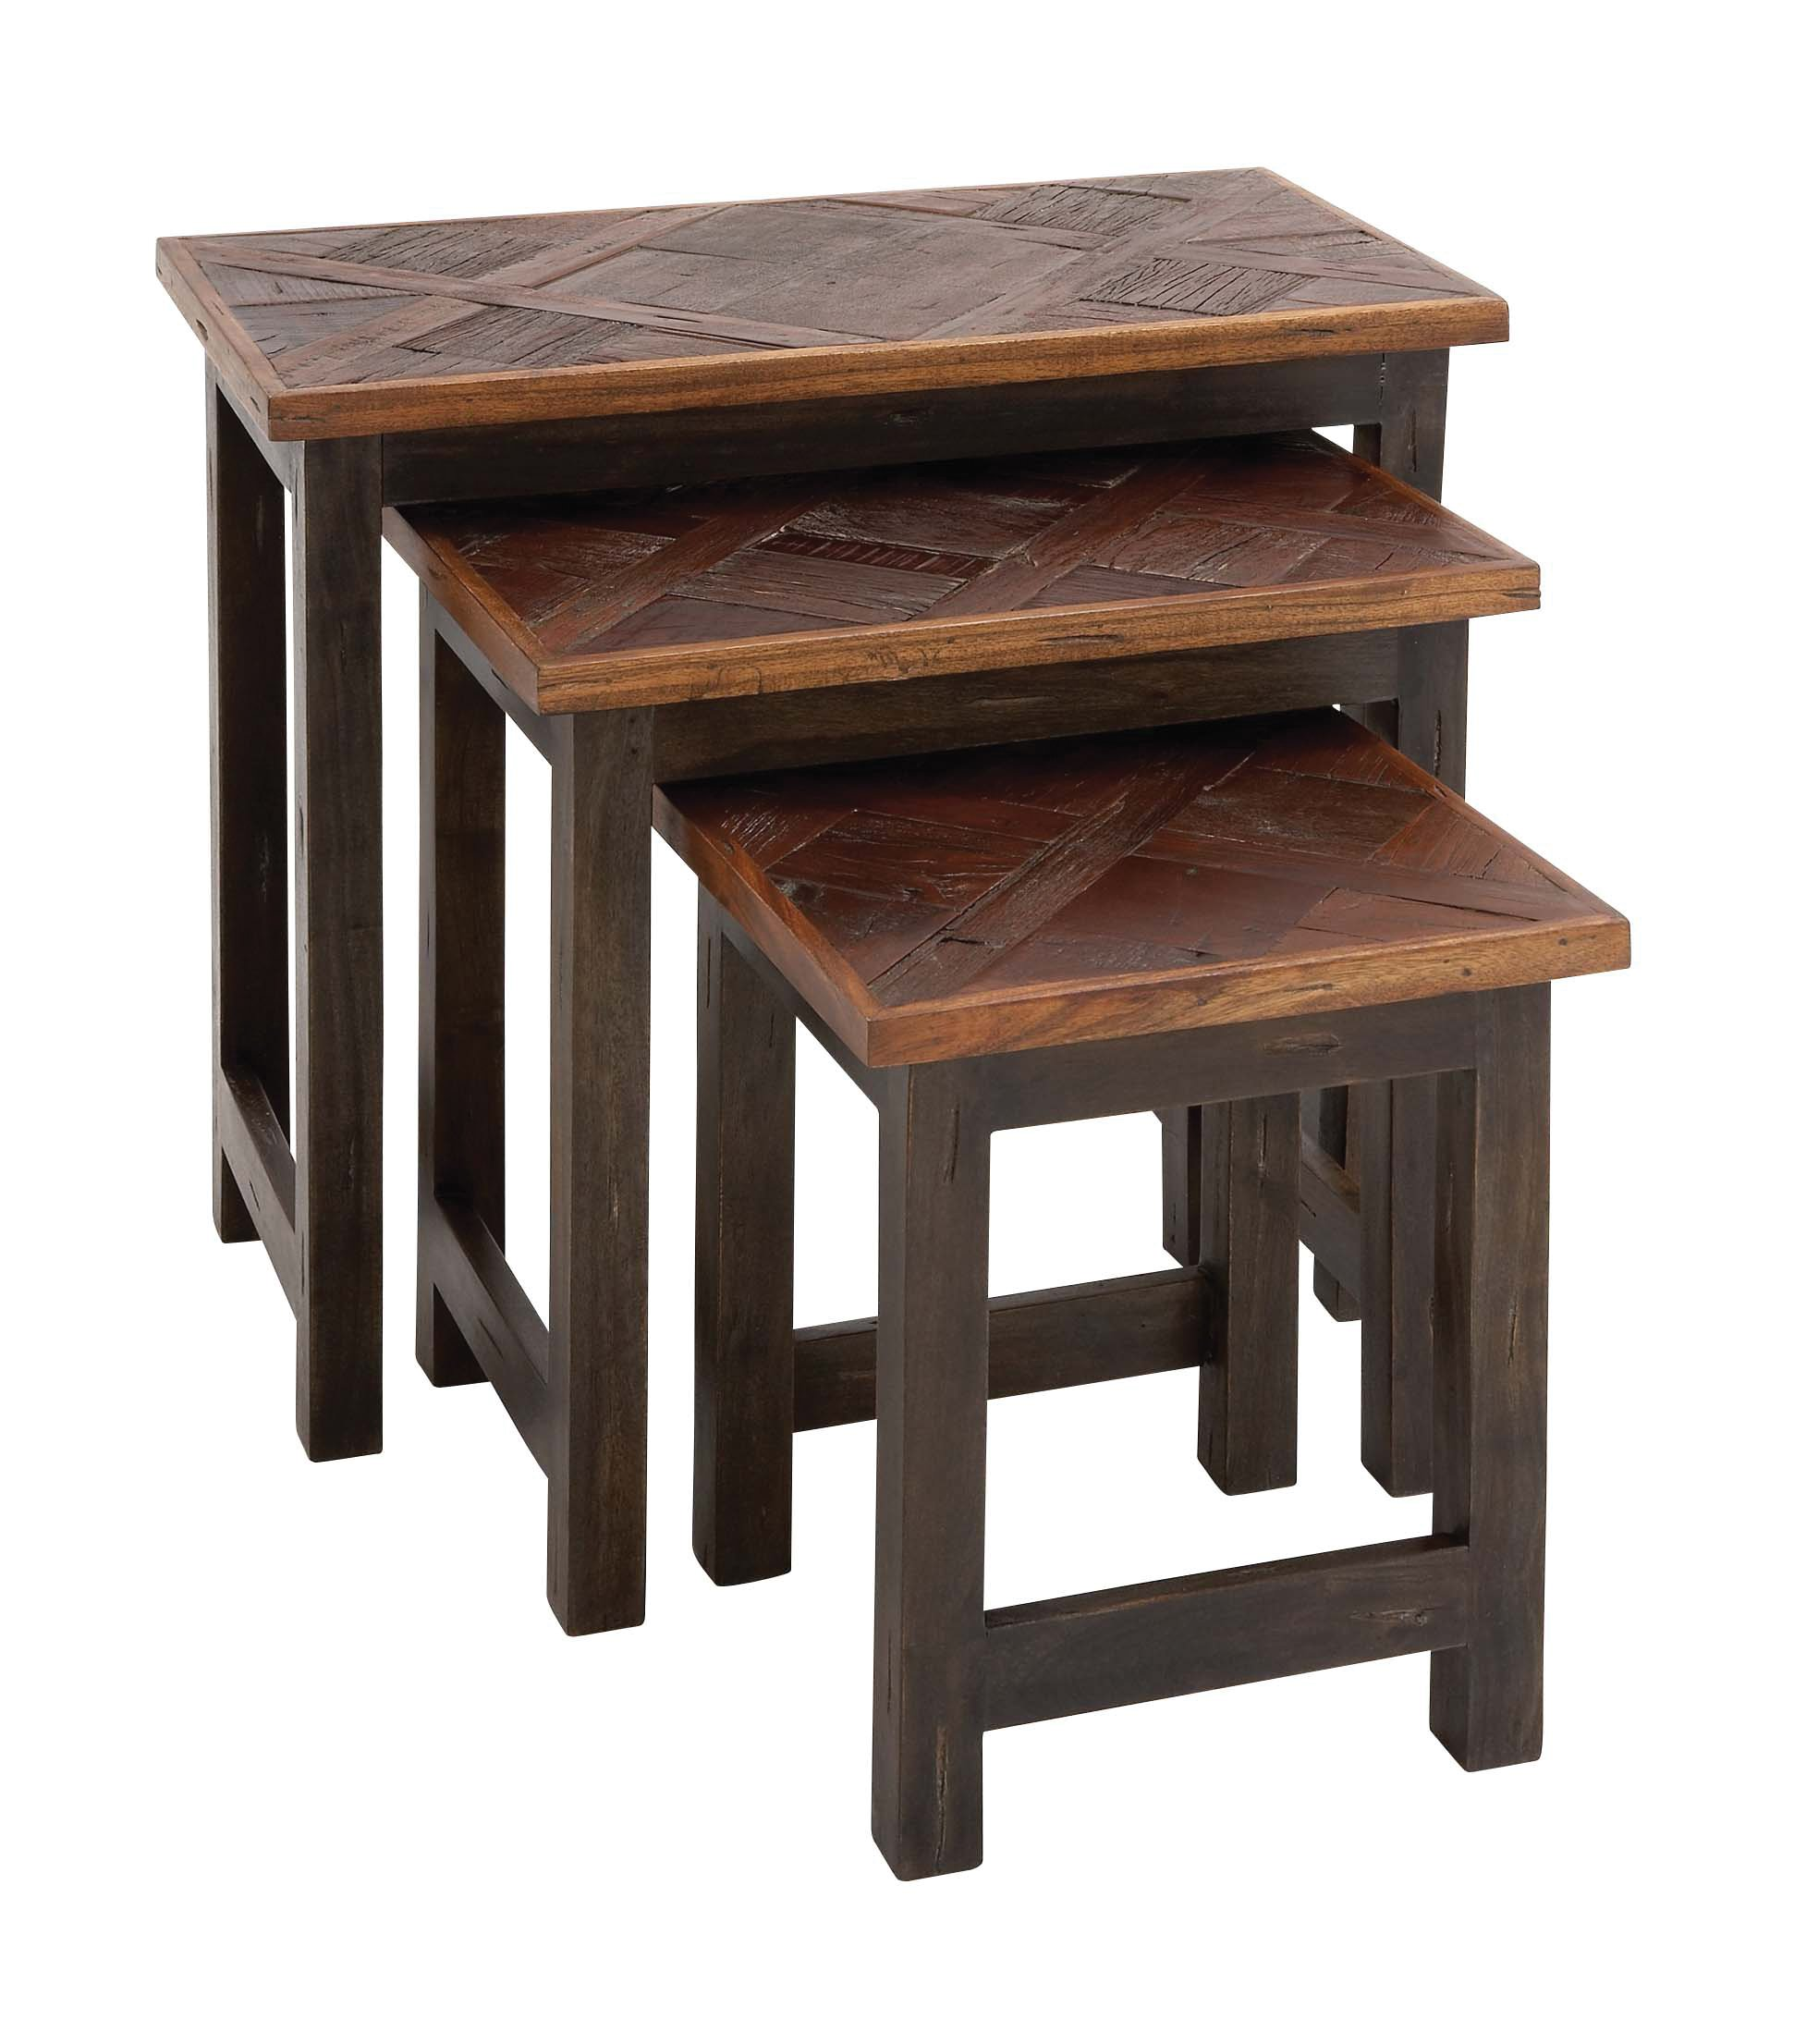 Benzara The Amazing Wood Nesting Table, Set of 3